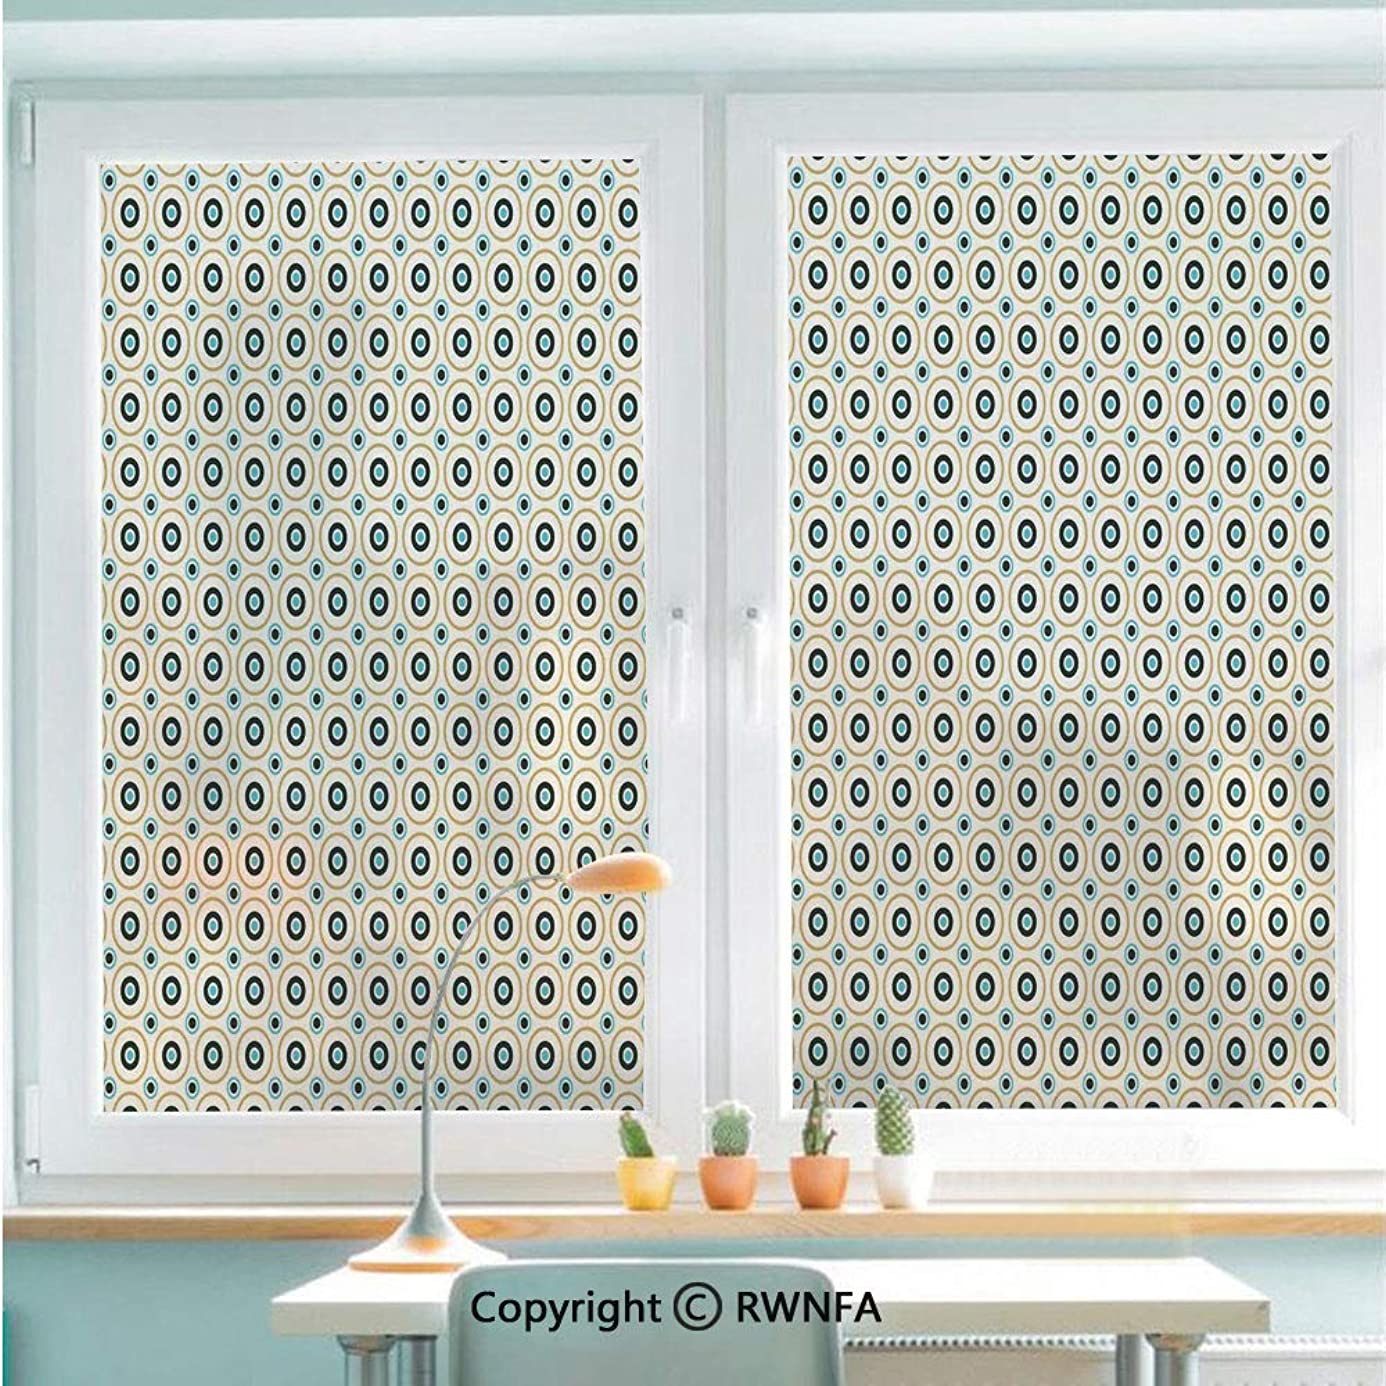 RWNFA Window Film No Glue Glass Sticker Circles and Dots Spots in Different Sizes Symmetrical Pop Art Inspired Static Cling Privacy Decor for Kitchen Bathroom 22.8x35.4inches,Sky Blue Black Amber vkv0726807